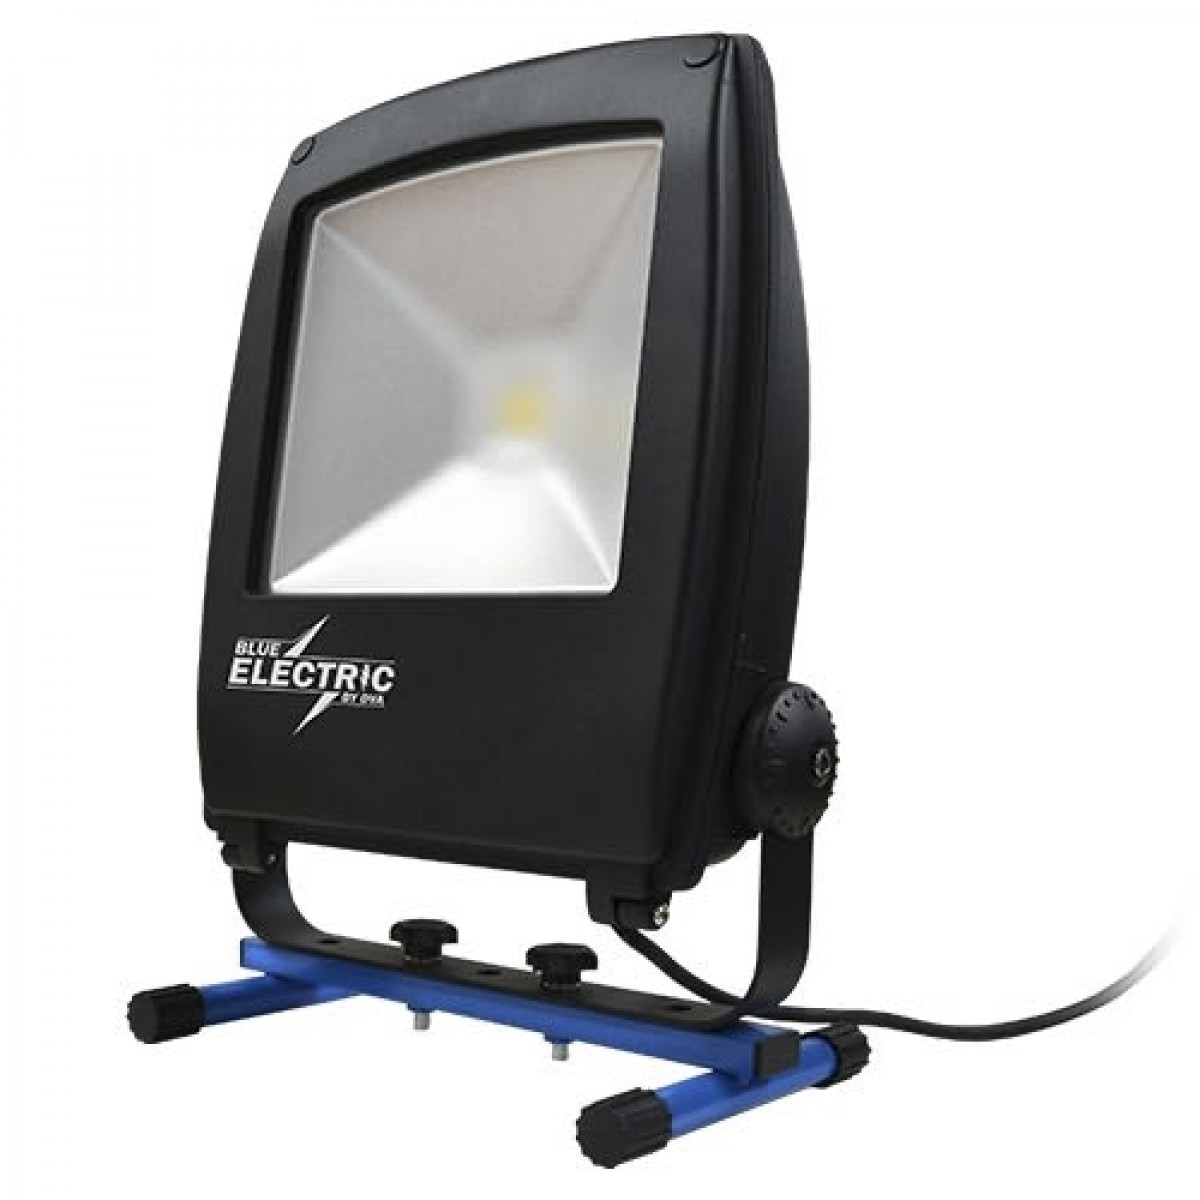 Blue Electric Led lampe 50W-31